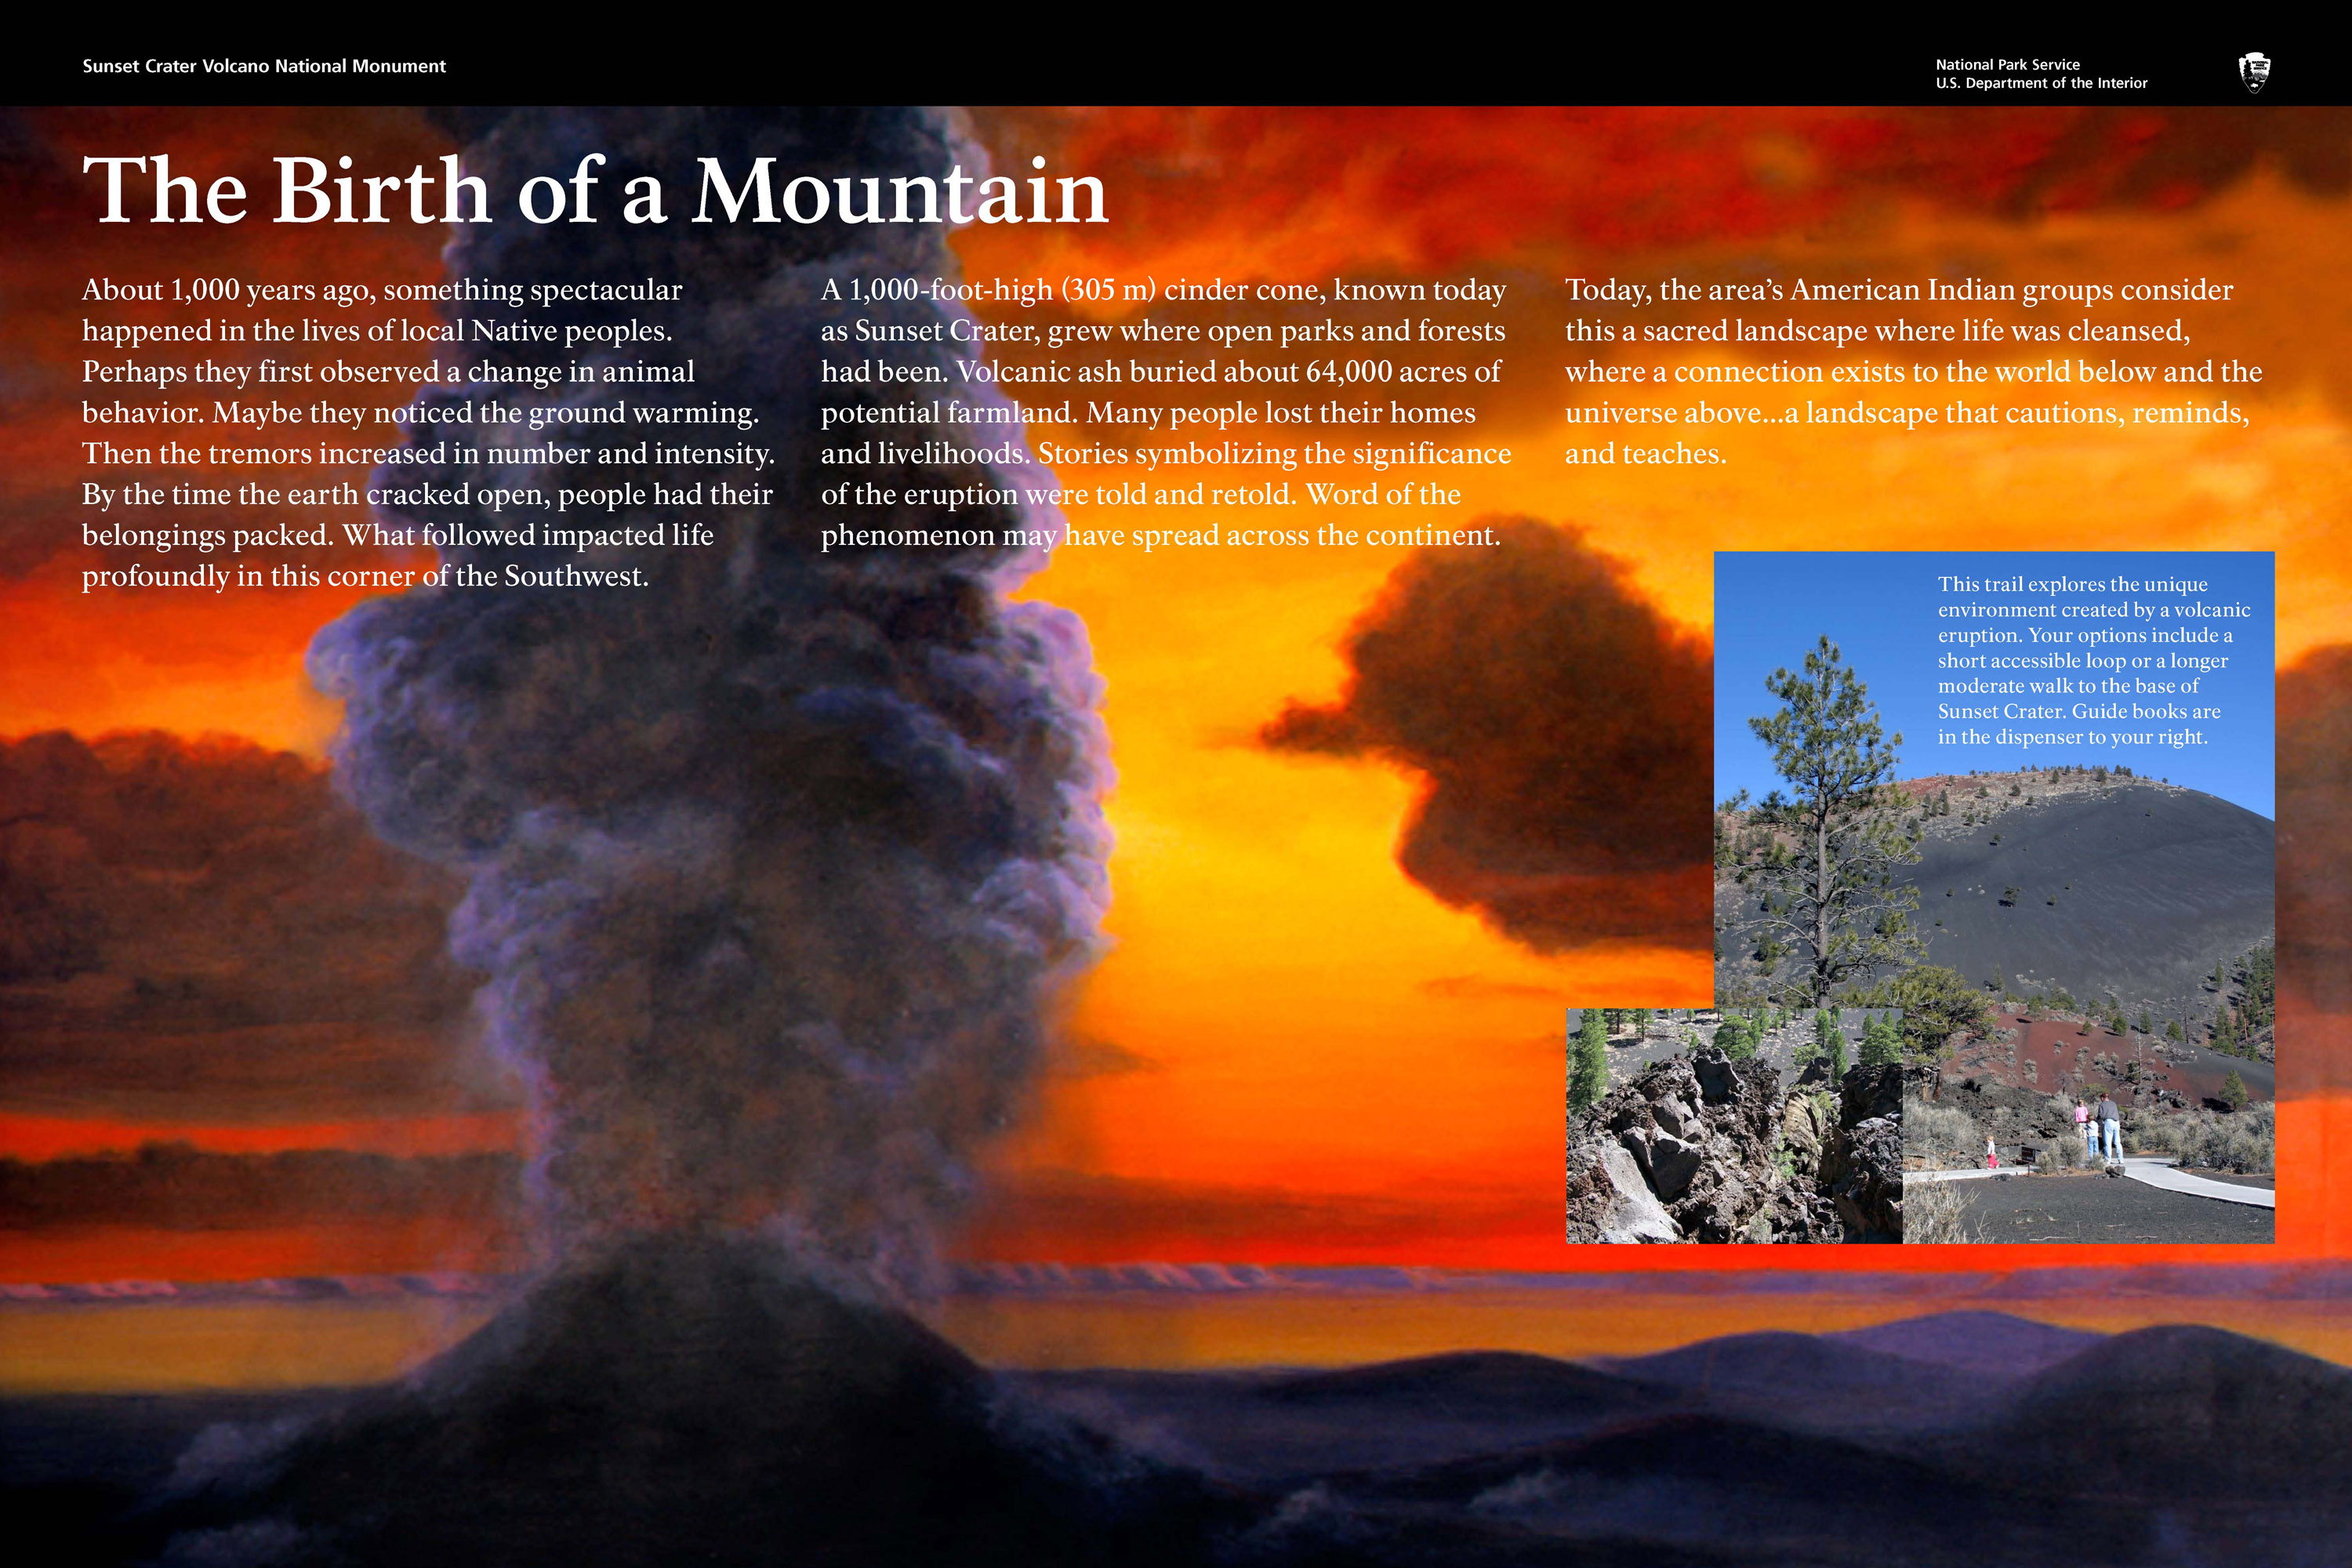 At birth, Sunset Crater was 1,000 feet (305 meters) tall.